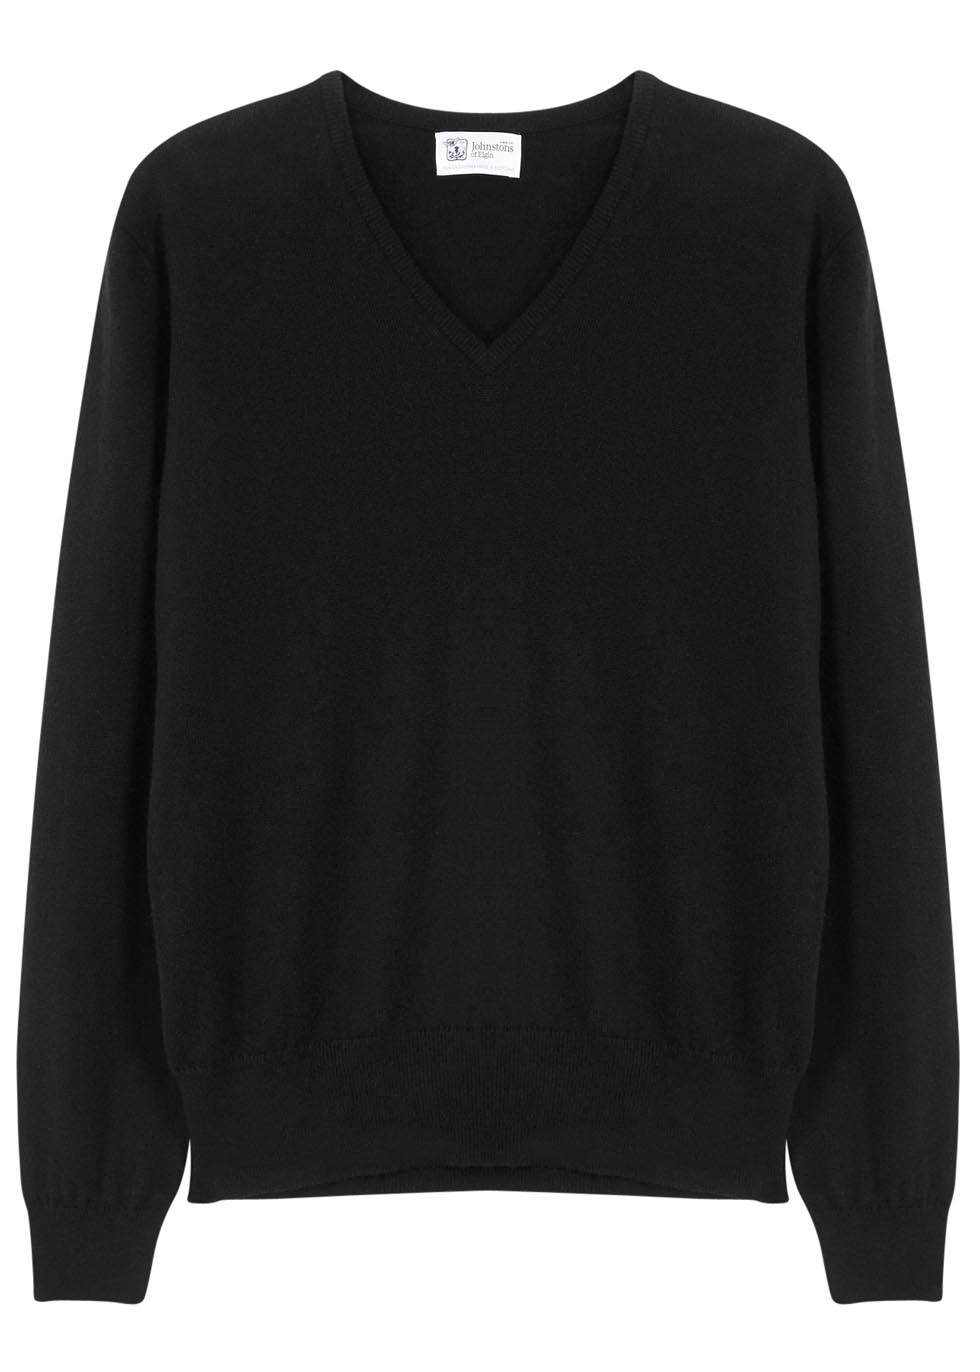 Black cashmere jumper - Johnstons of Elgin